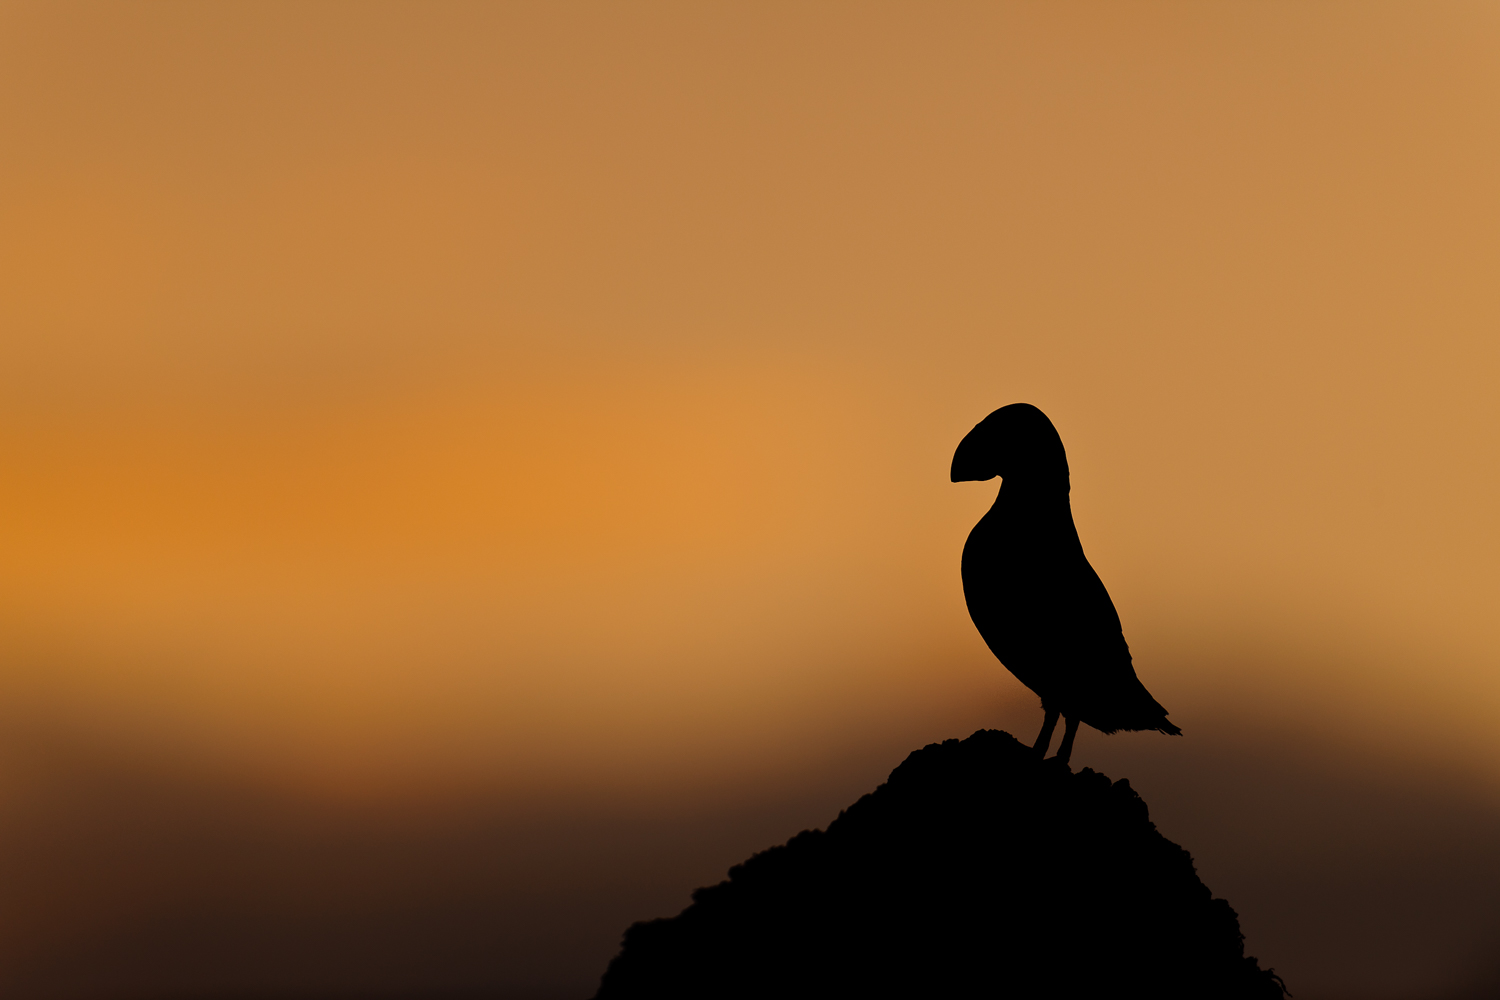 Puffin Silhouetted at Dusk